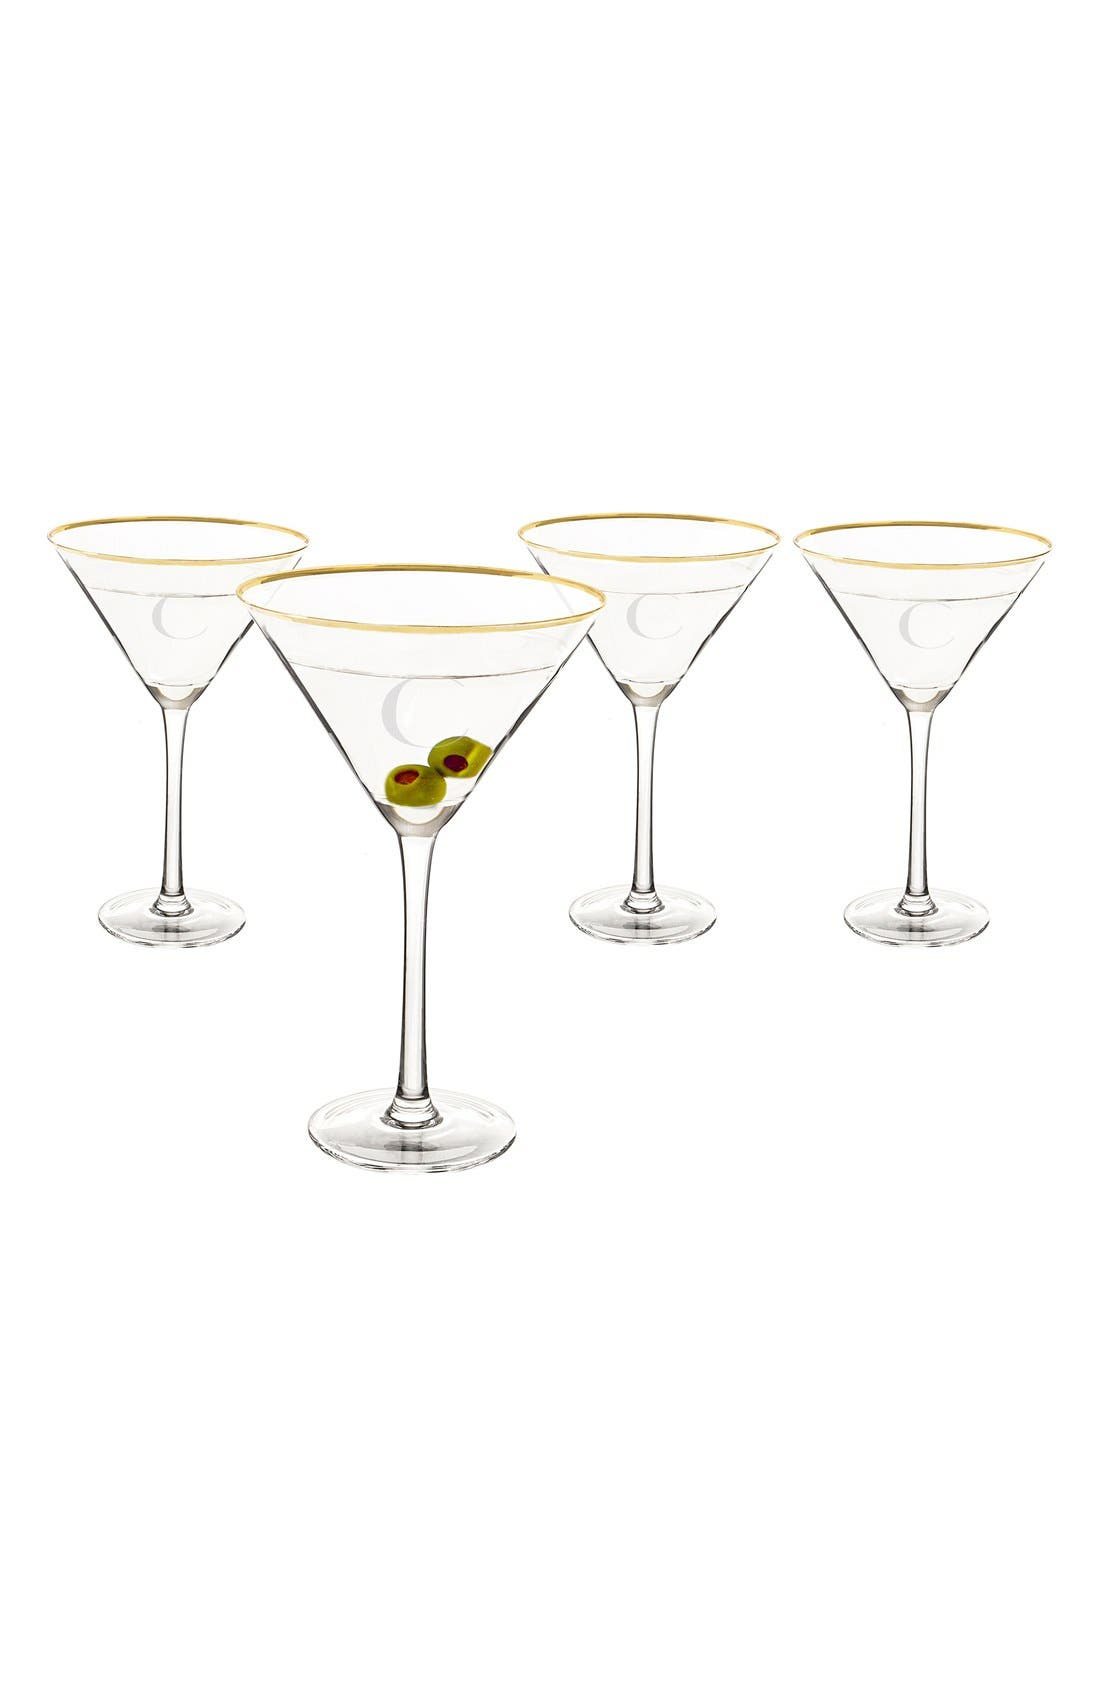 Main Image - Cathy's Concepts Set of 4 Gold Rimmed Monogram Martini Glasses